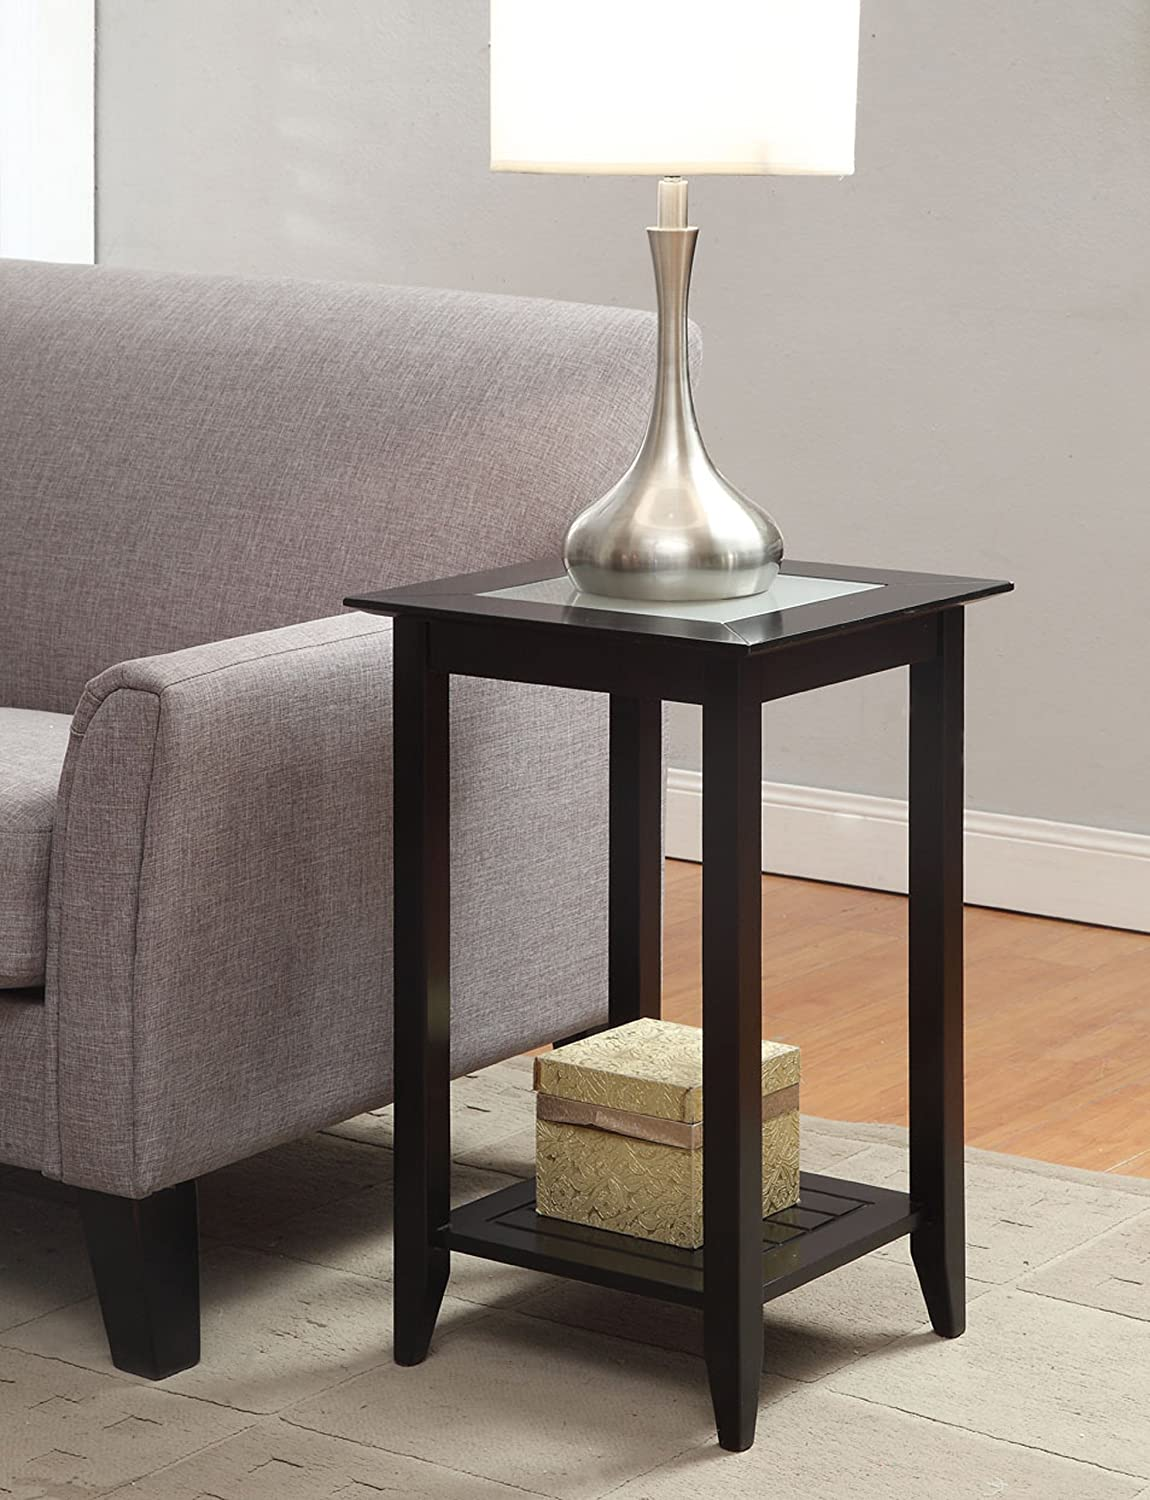 amazoncom convenience concepts carmel end table black kitchen  - amazoncom convenience concepts carmel end table black kitchen  dining